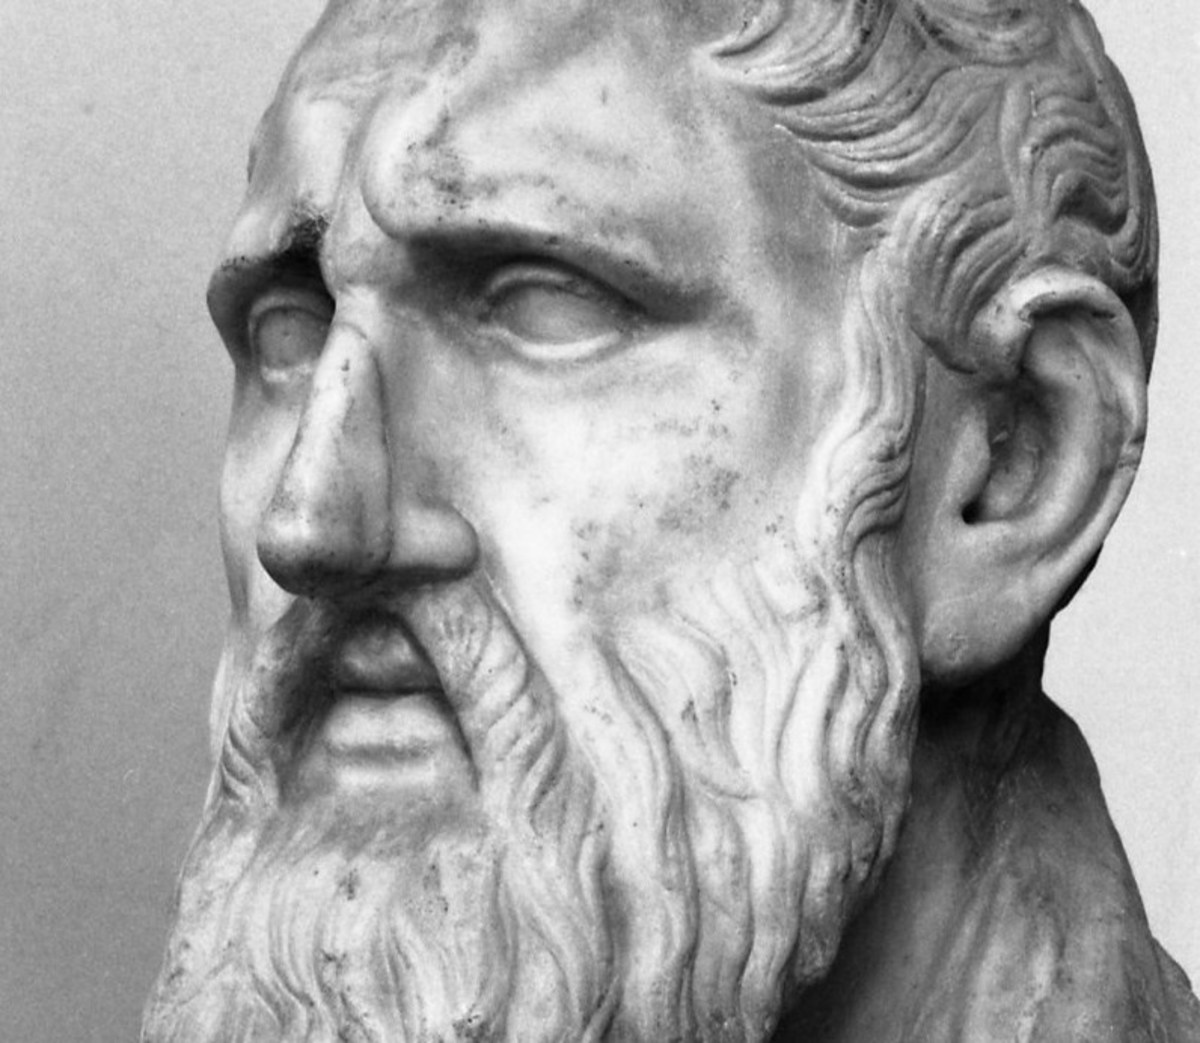 To the Stoics, The Word was an impersonal force that ordered and enervated the universe